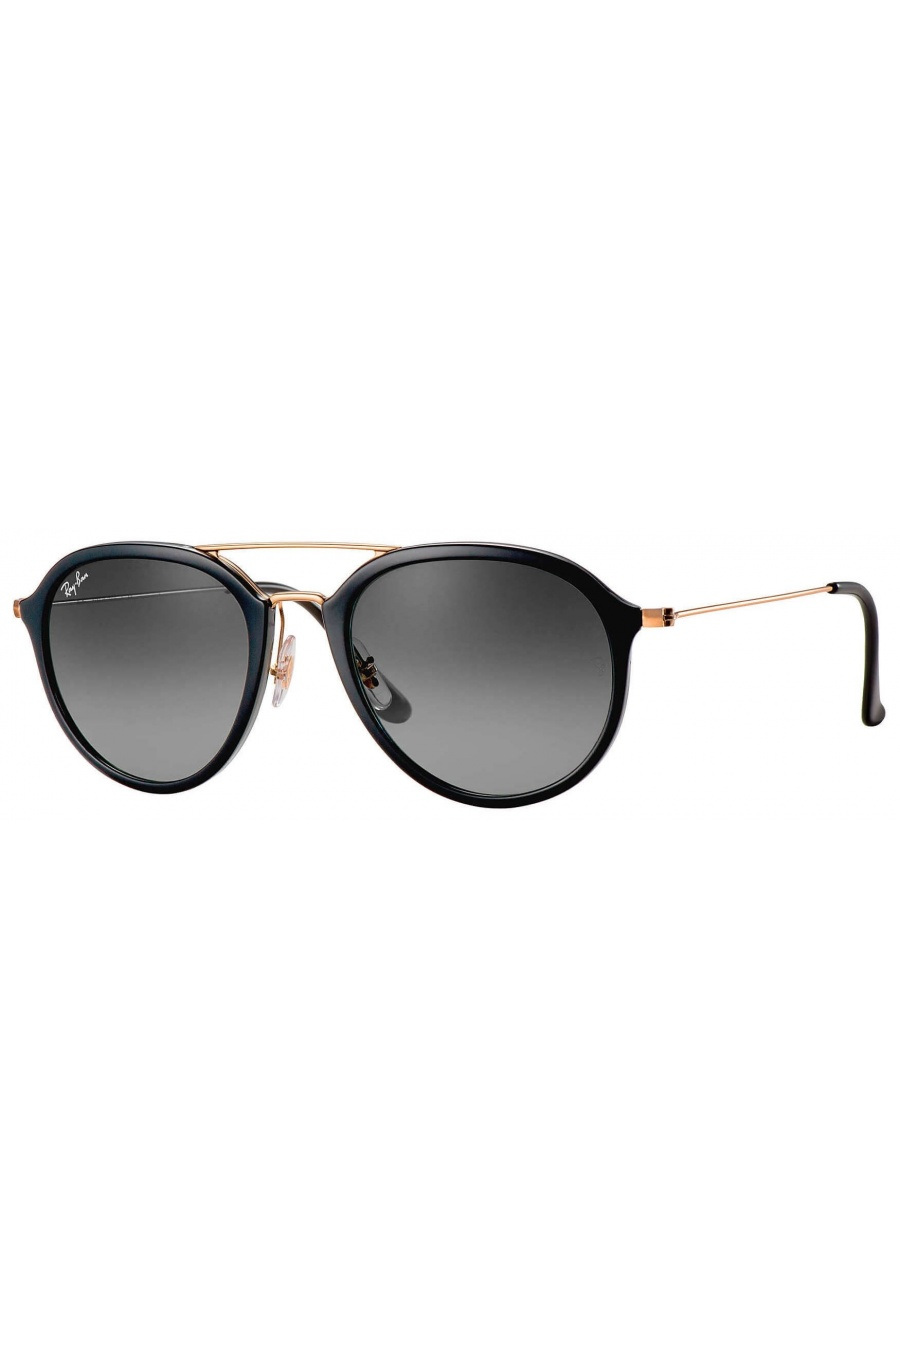 RAY-BAN RB4253 601/71 53mm